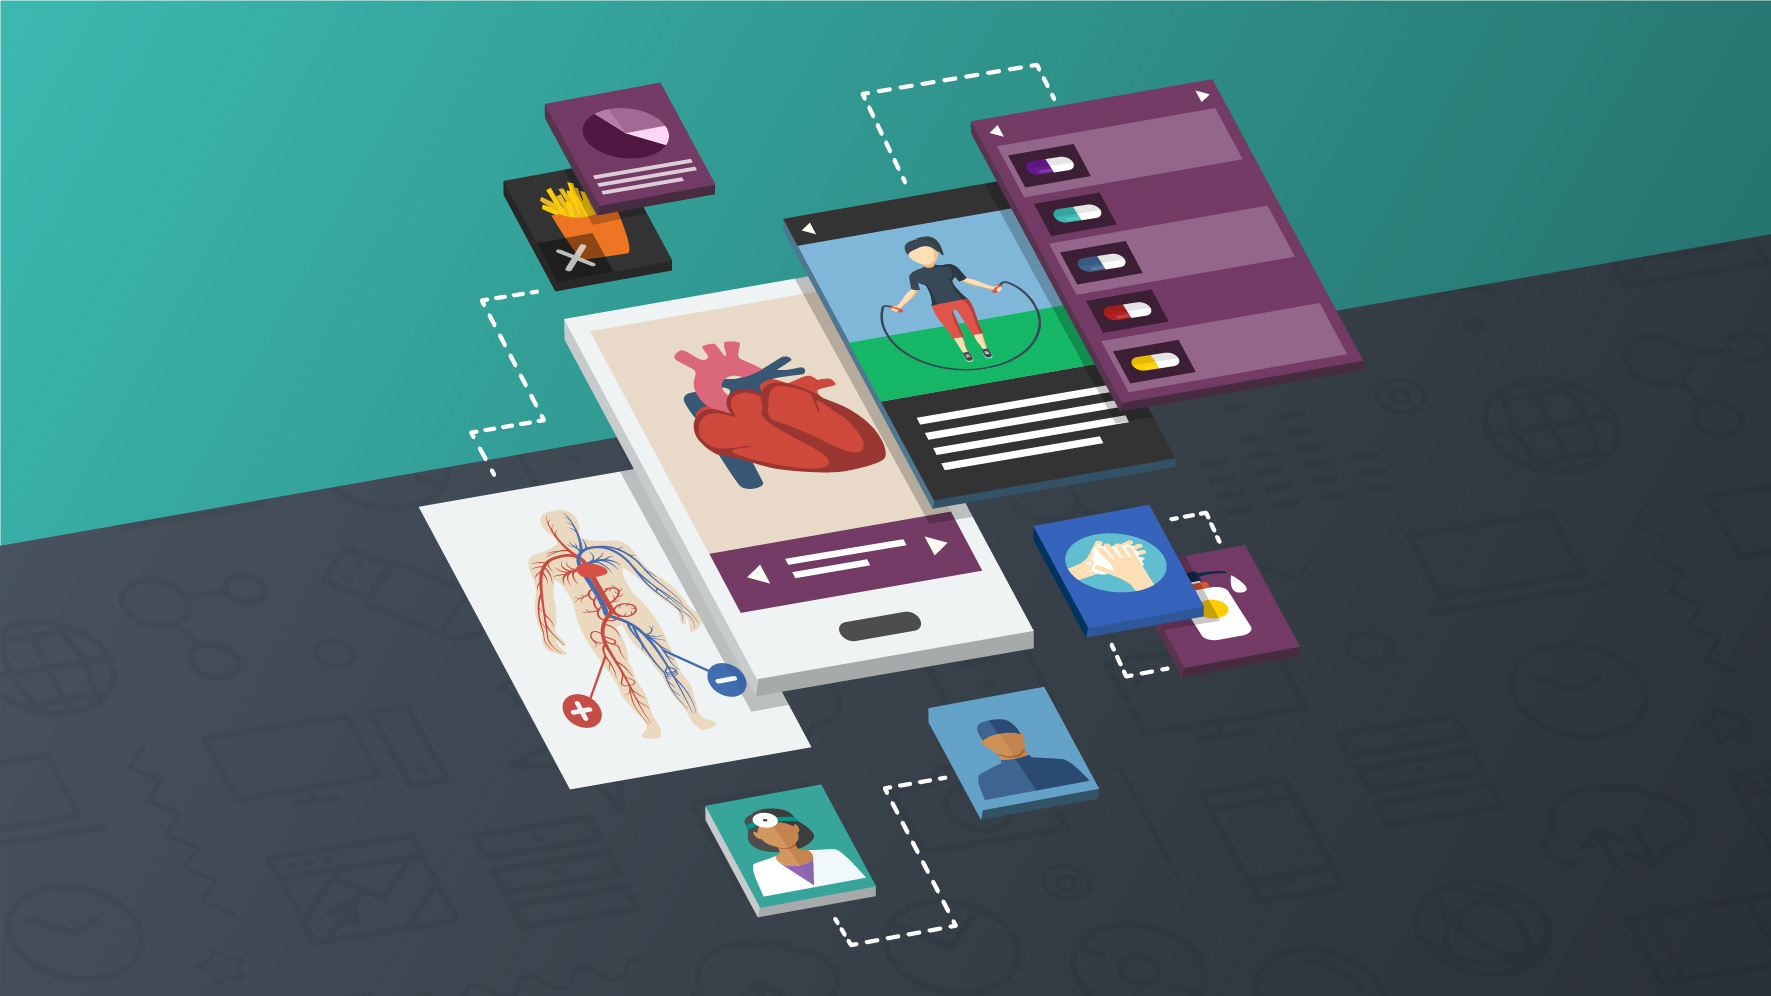 A collection of medical apps and mobile health apps